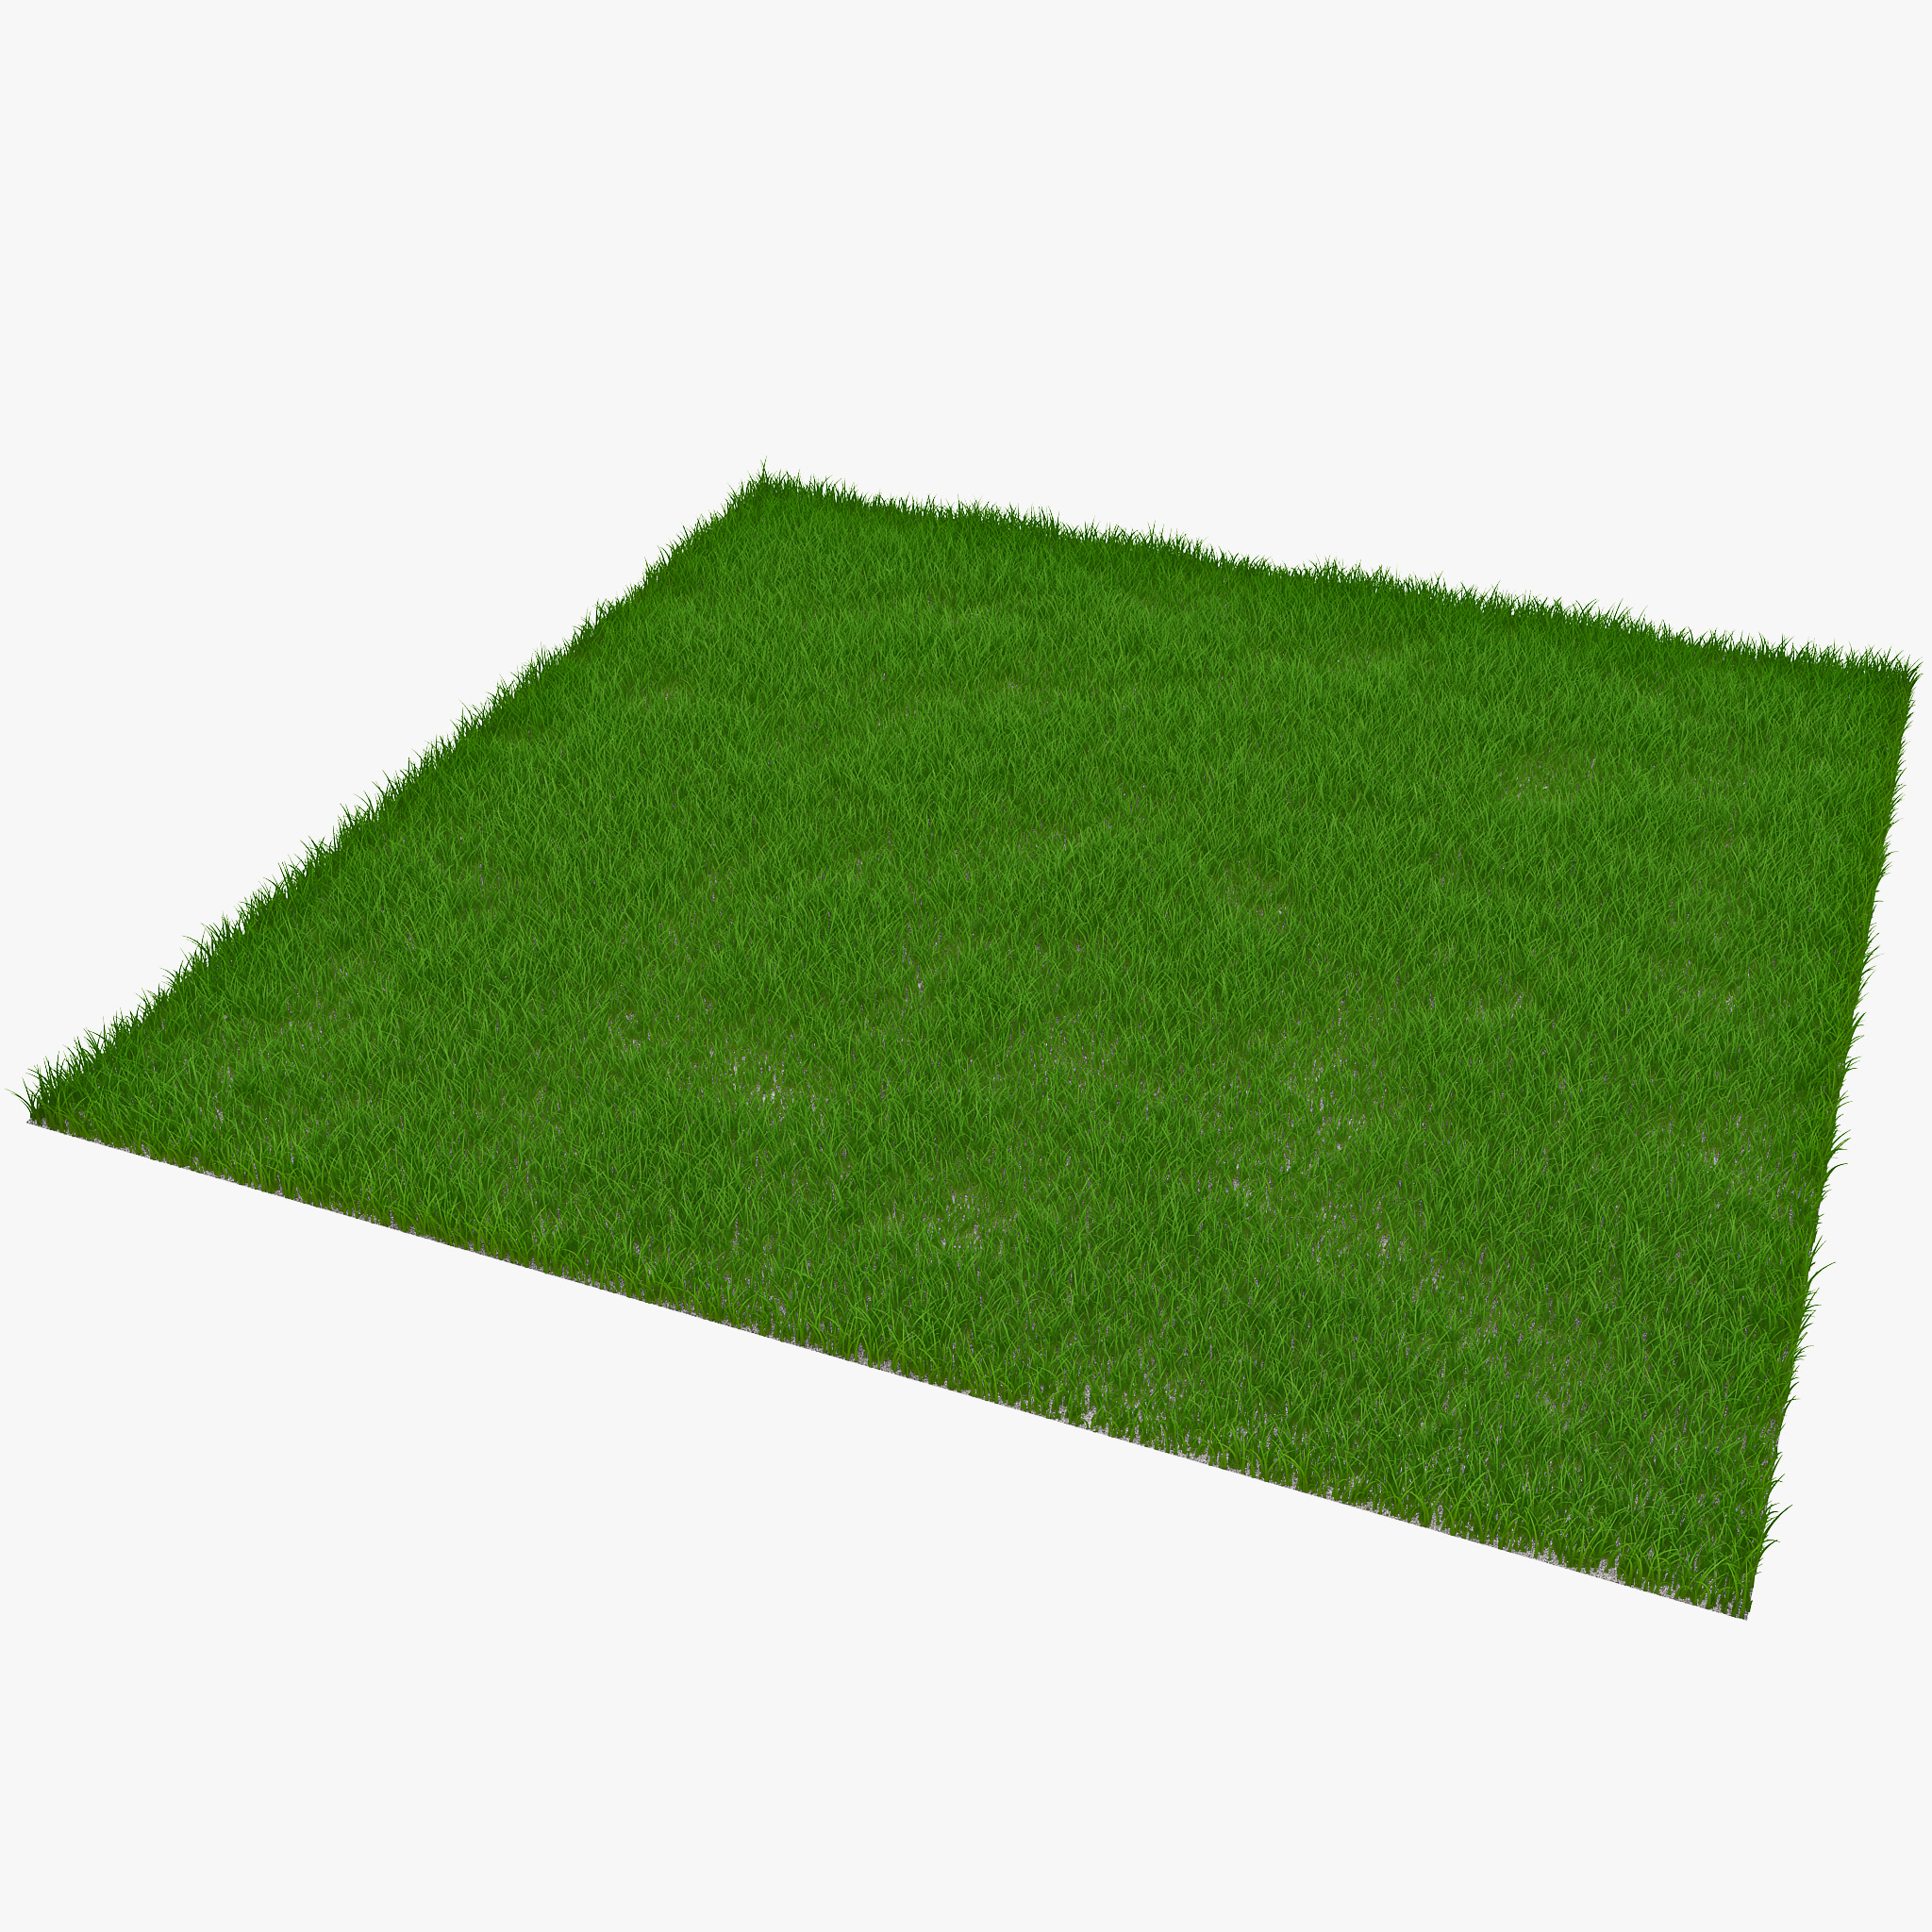 Rectangular Grass Patch_1.jpg